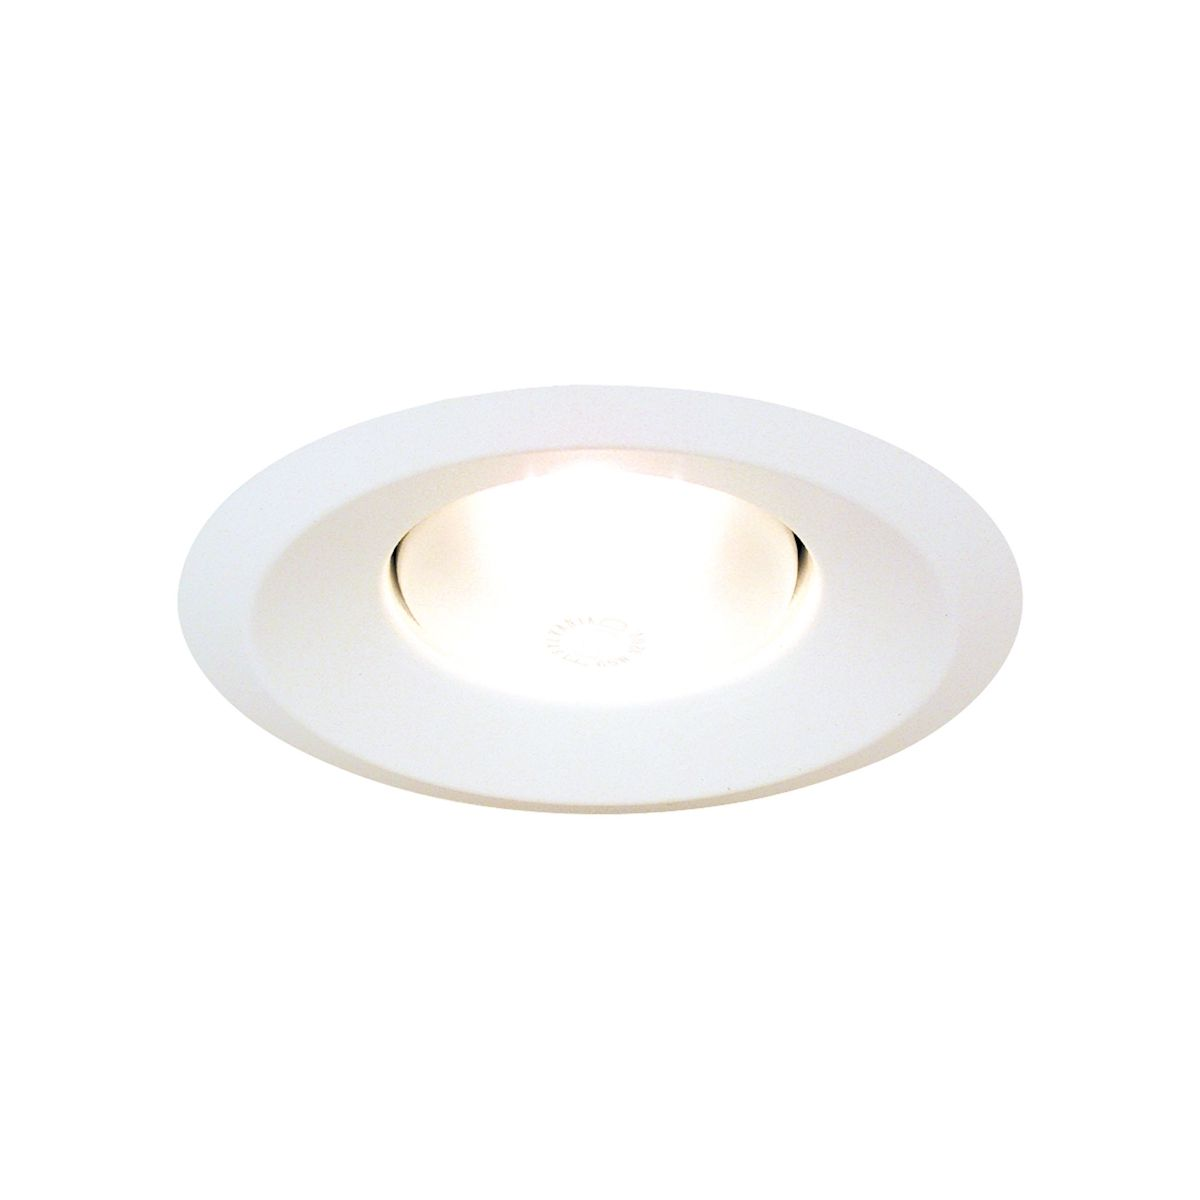 Thomas Lighting Trs30w Recessed Matte White Recessed Lighting Trim Residential Lighting Exterior Light Fixtures